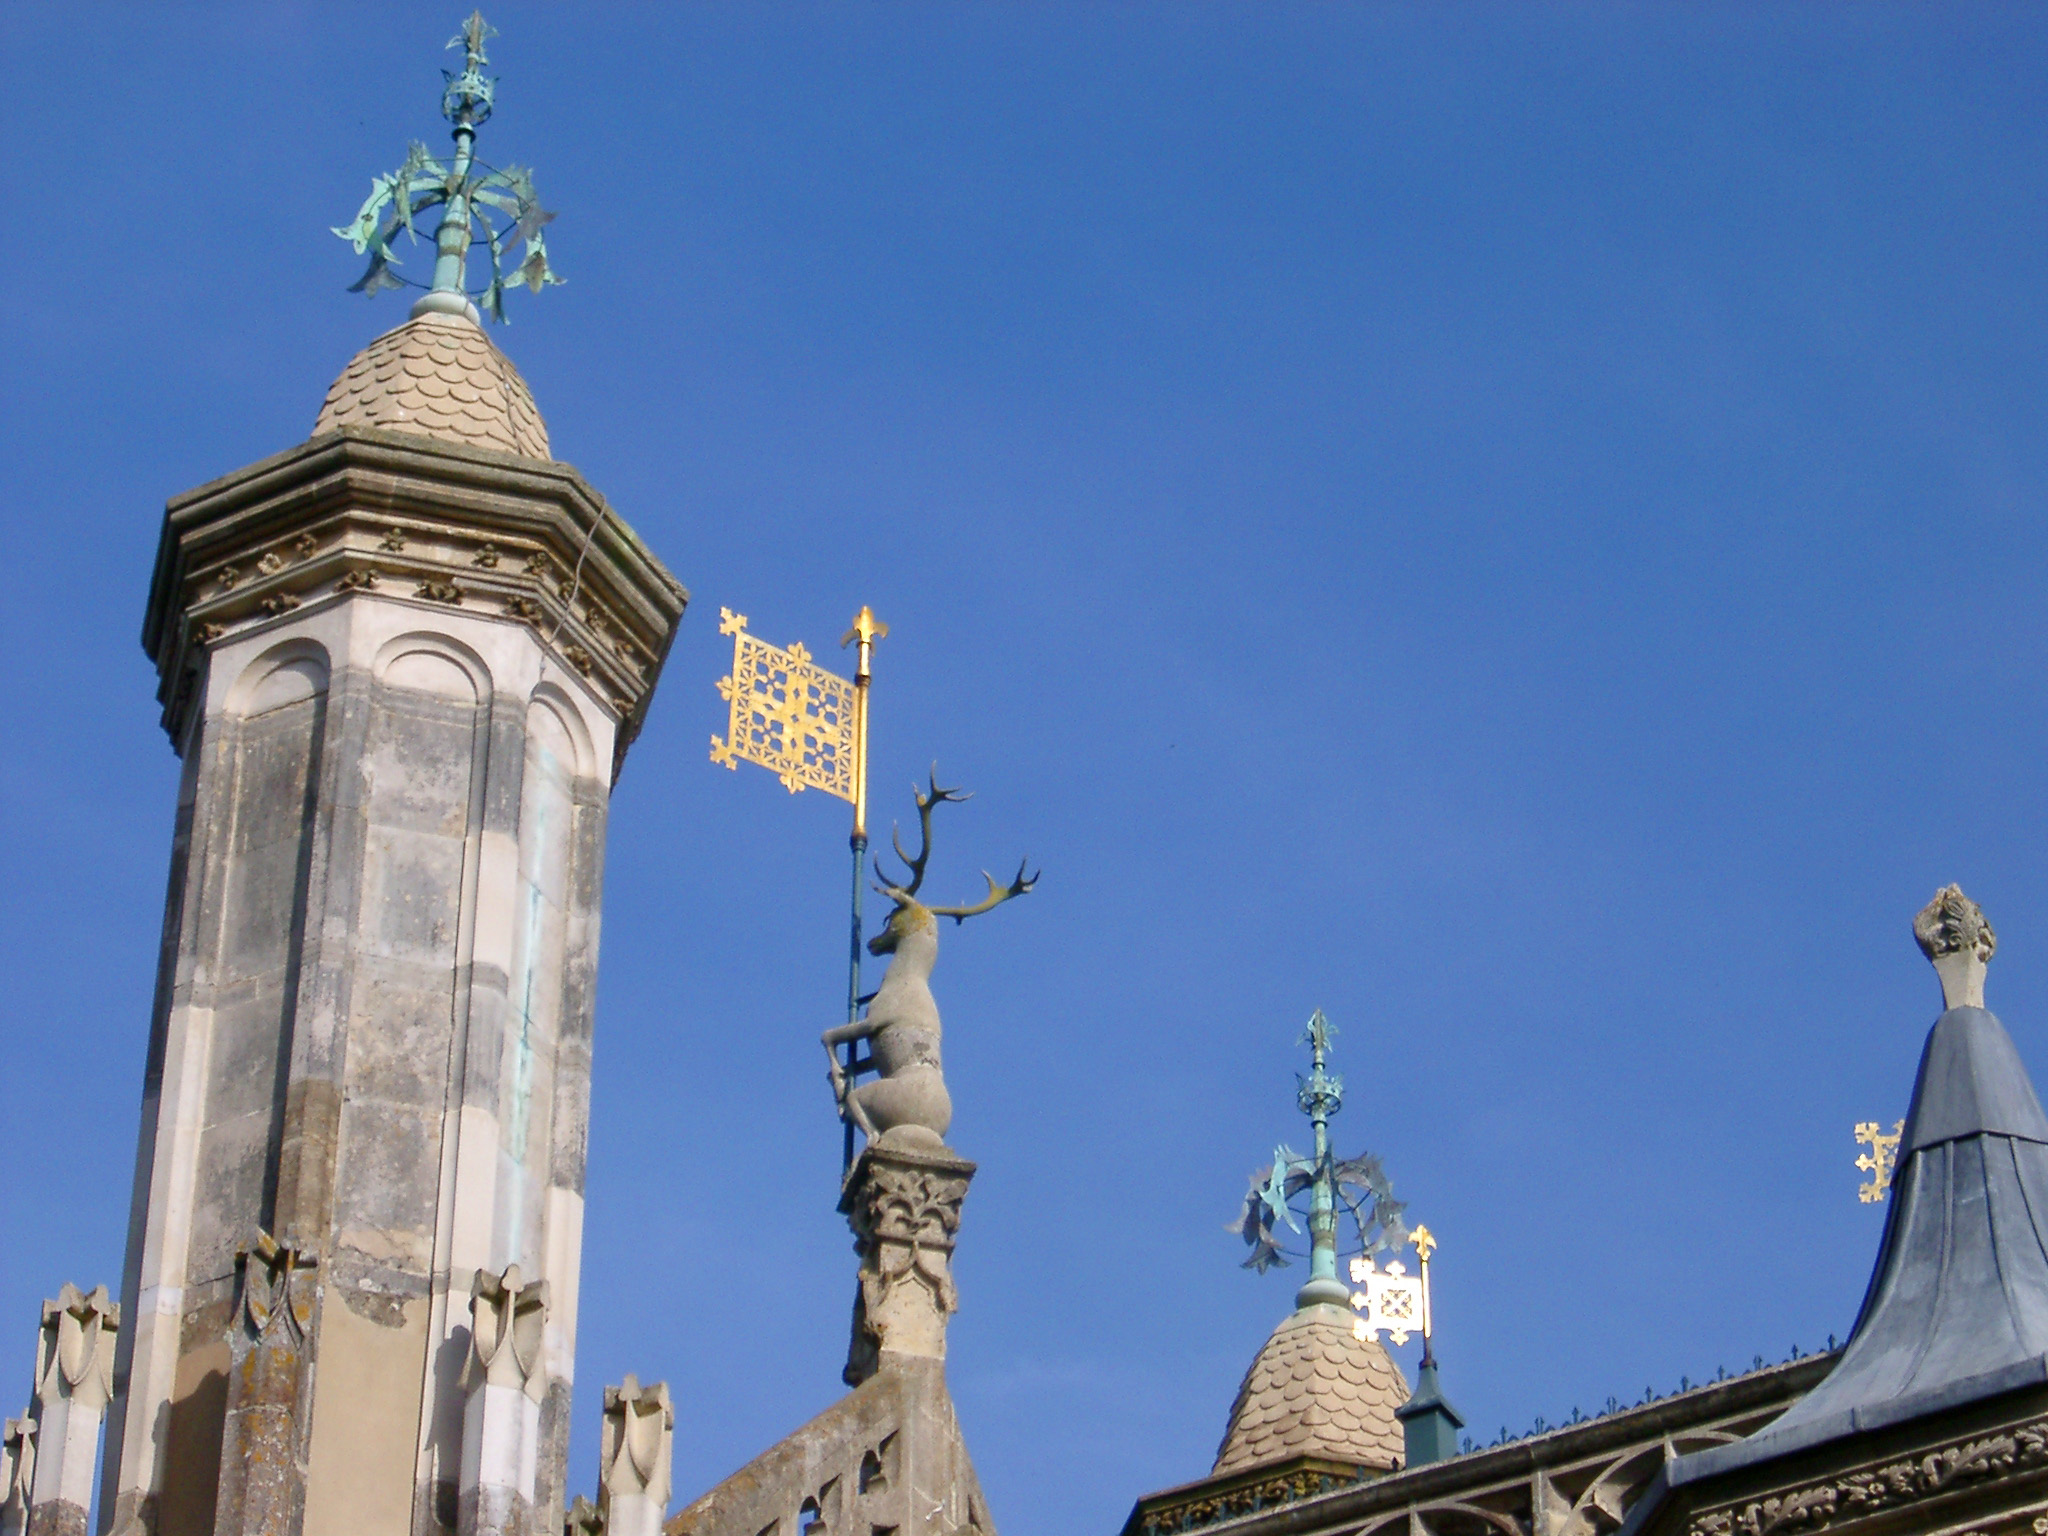 gothic revival roof decorations pictured against a blue sky